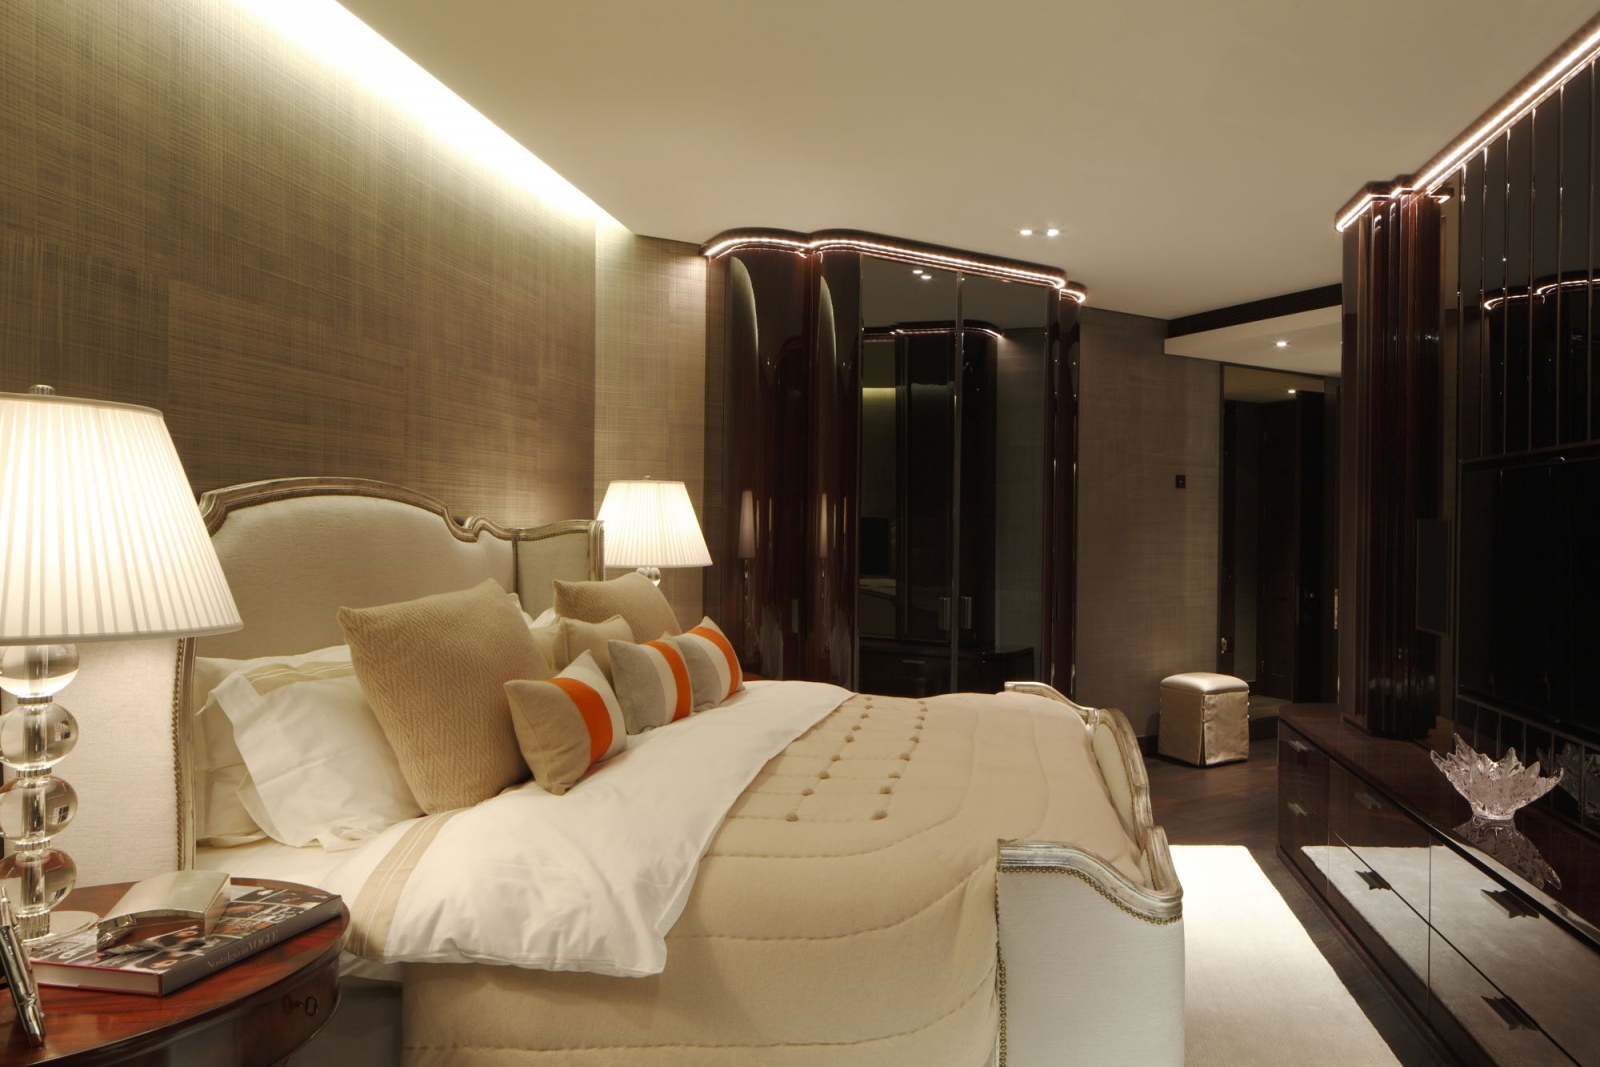 bedroom, Practical Interior Design and Decorating Ideas for Bedroom